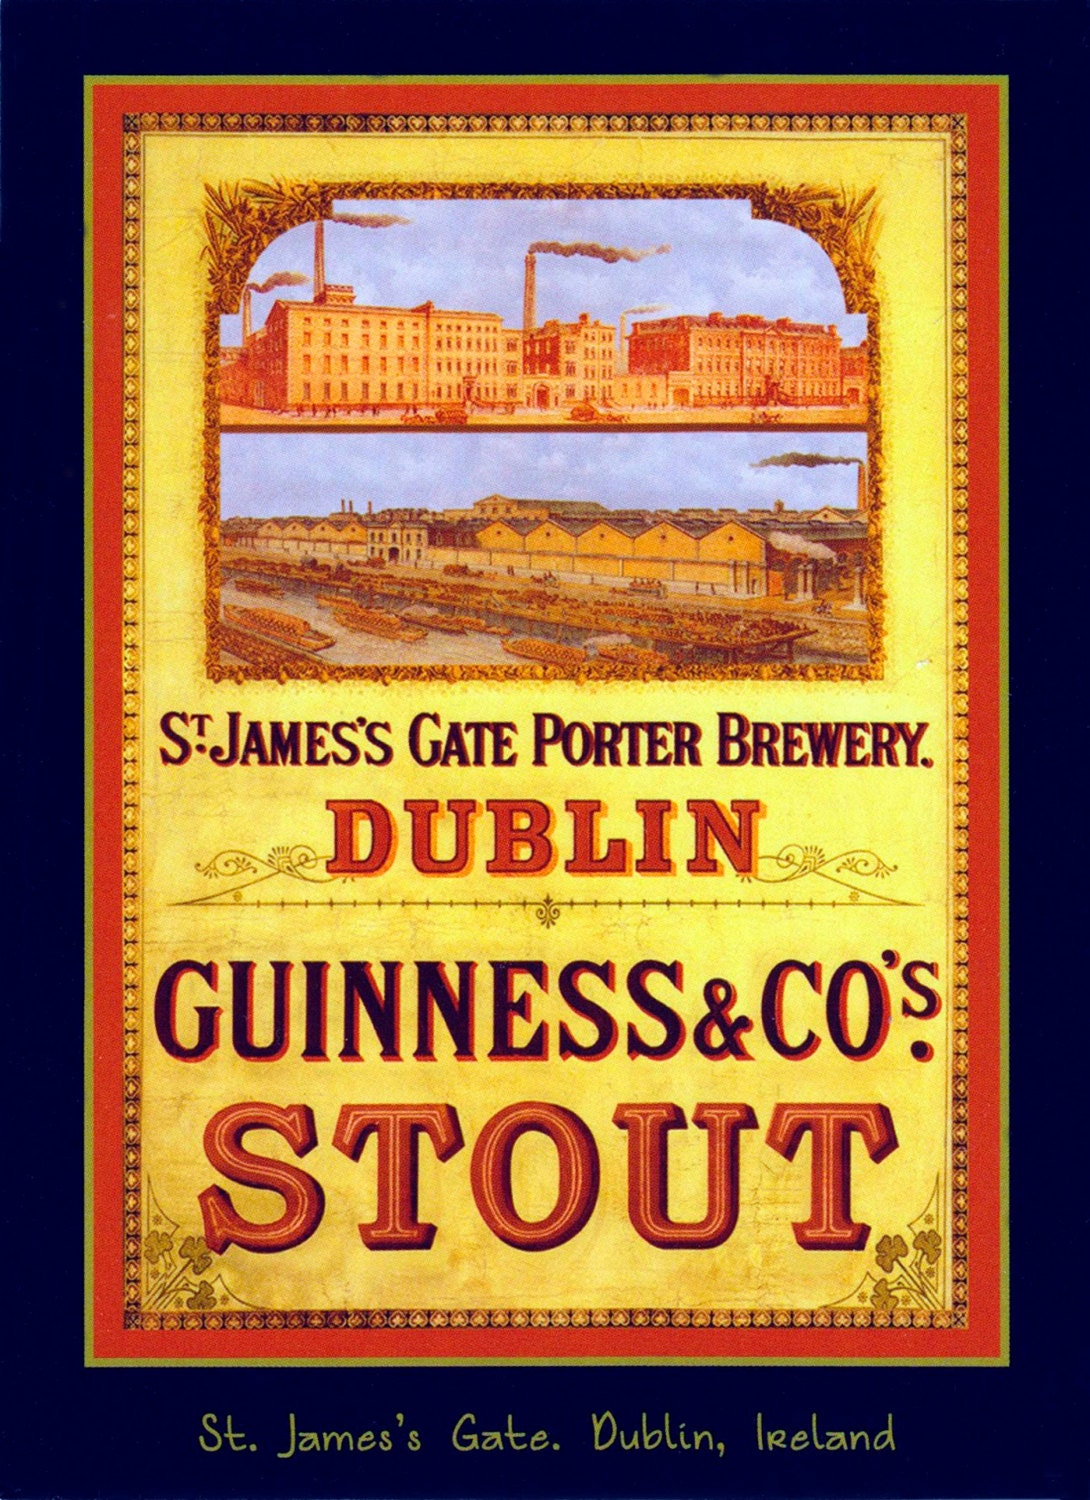 Guinness Metal Sign Vintage Retro Shabby-Chic Wall Plaque